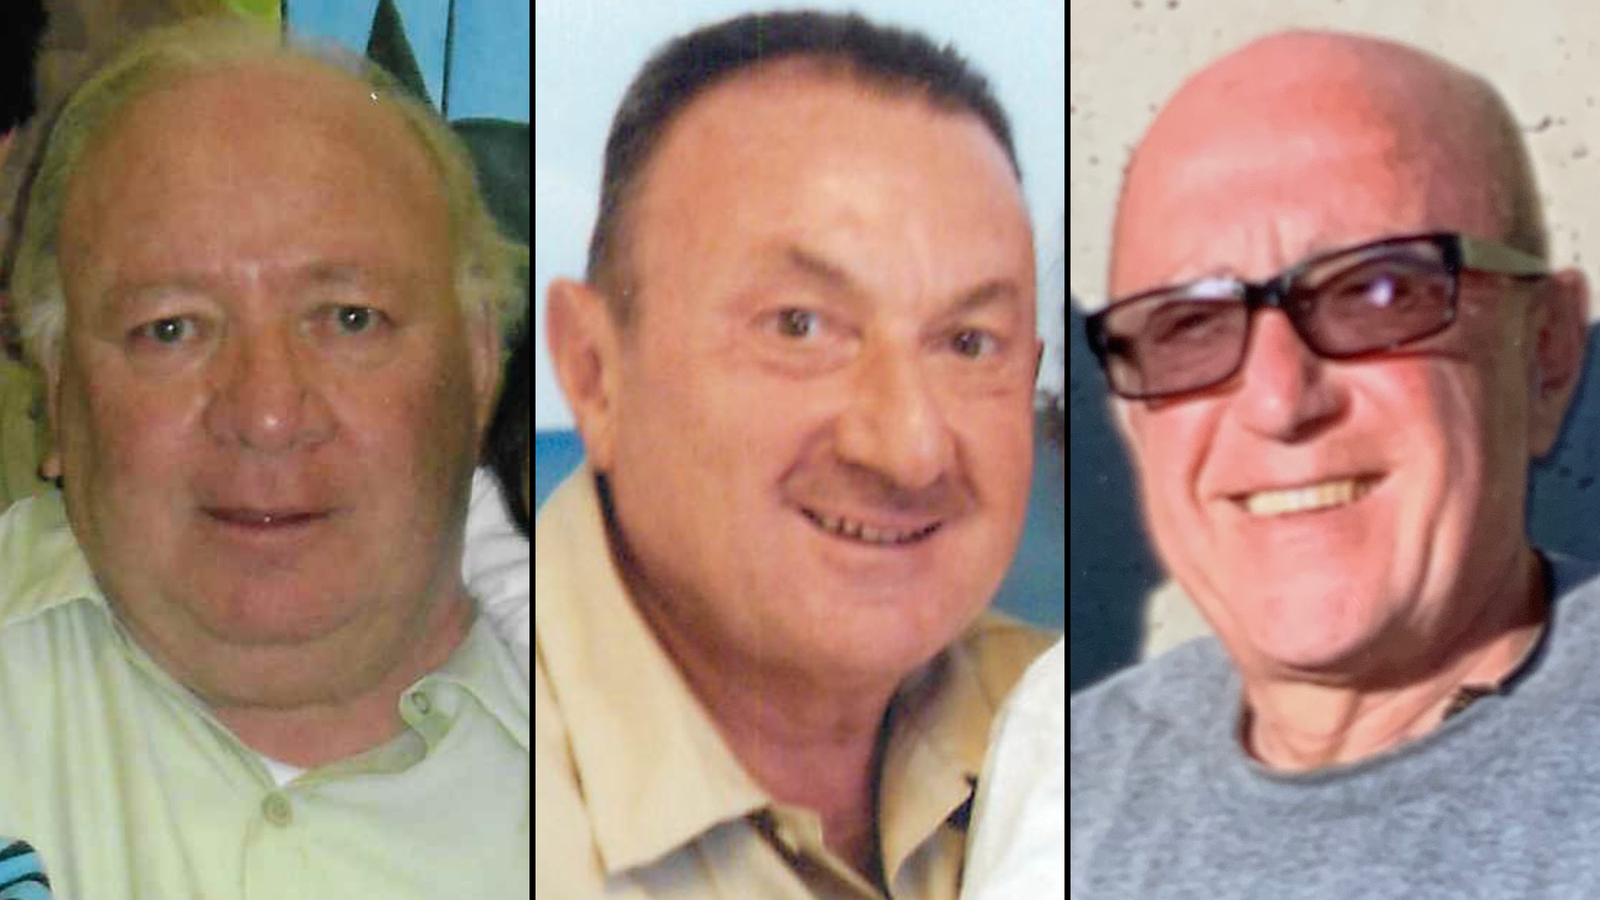 From left, Juan Carlos Seresi, Vahe Andonian and Nazareth Andonian. These men received 500-plus years for drug charges. (Patti Mawer/Jerry Newton/Andonian family via CNN)